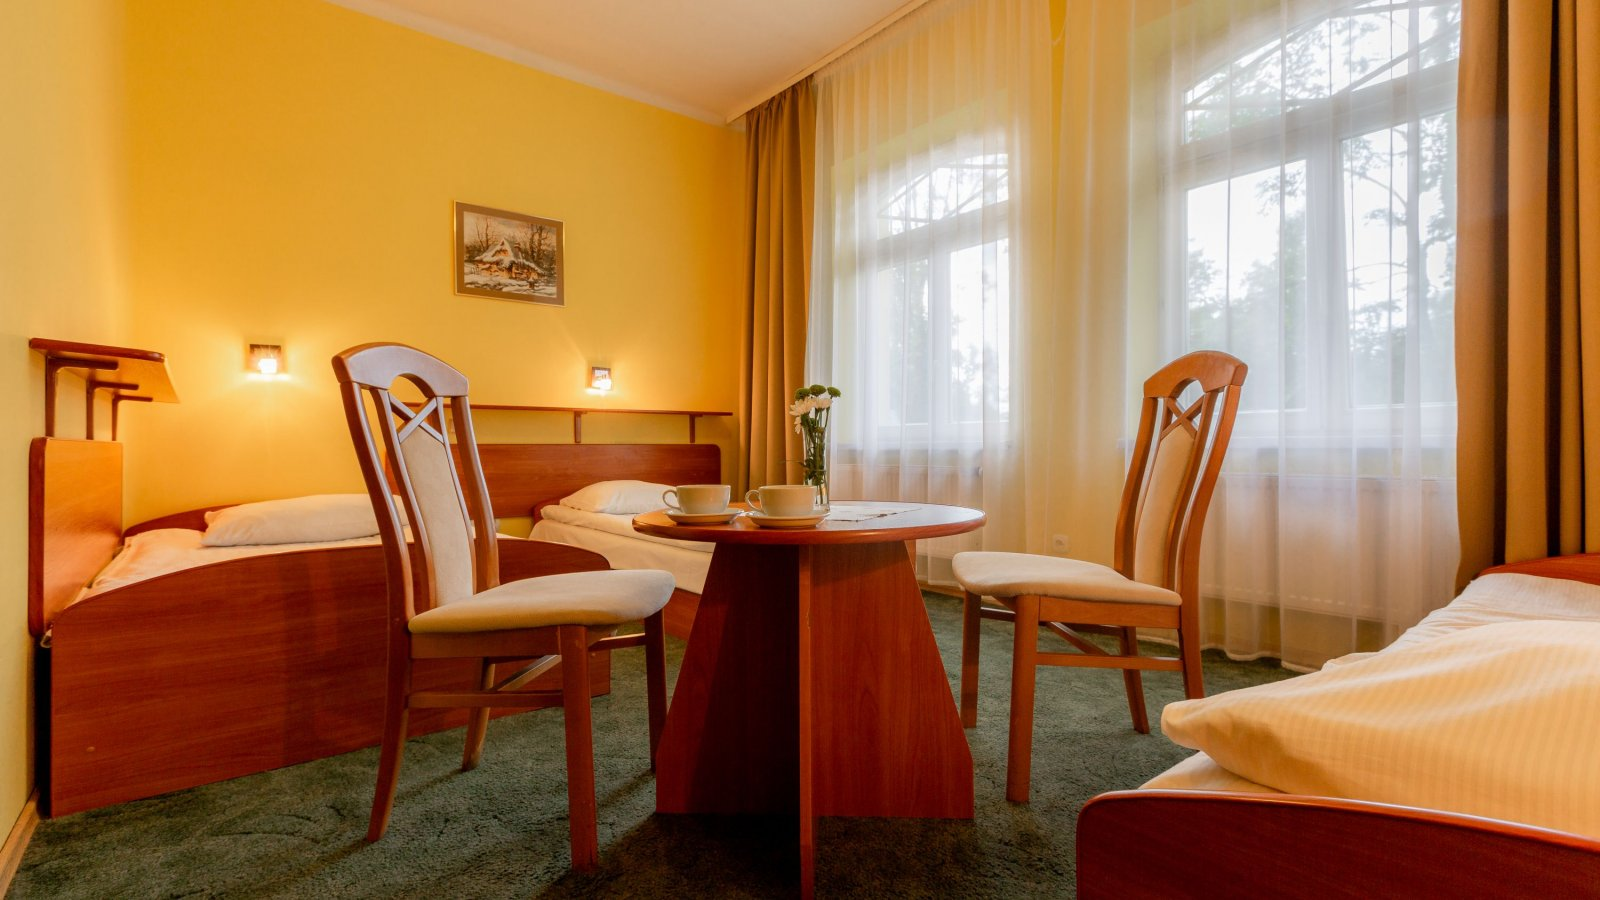 3-person room in Villa Żychoniówka